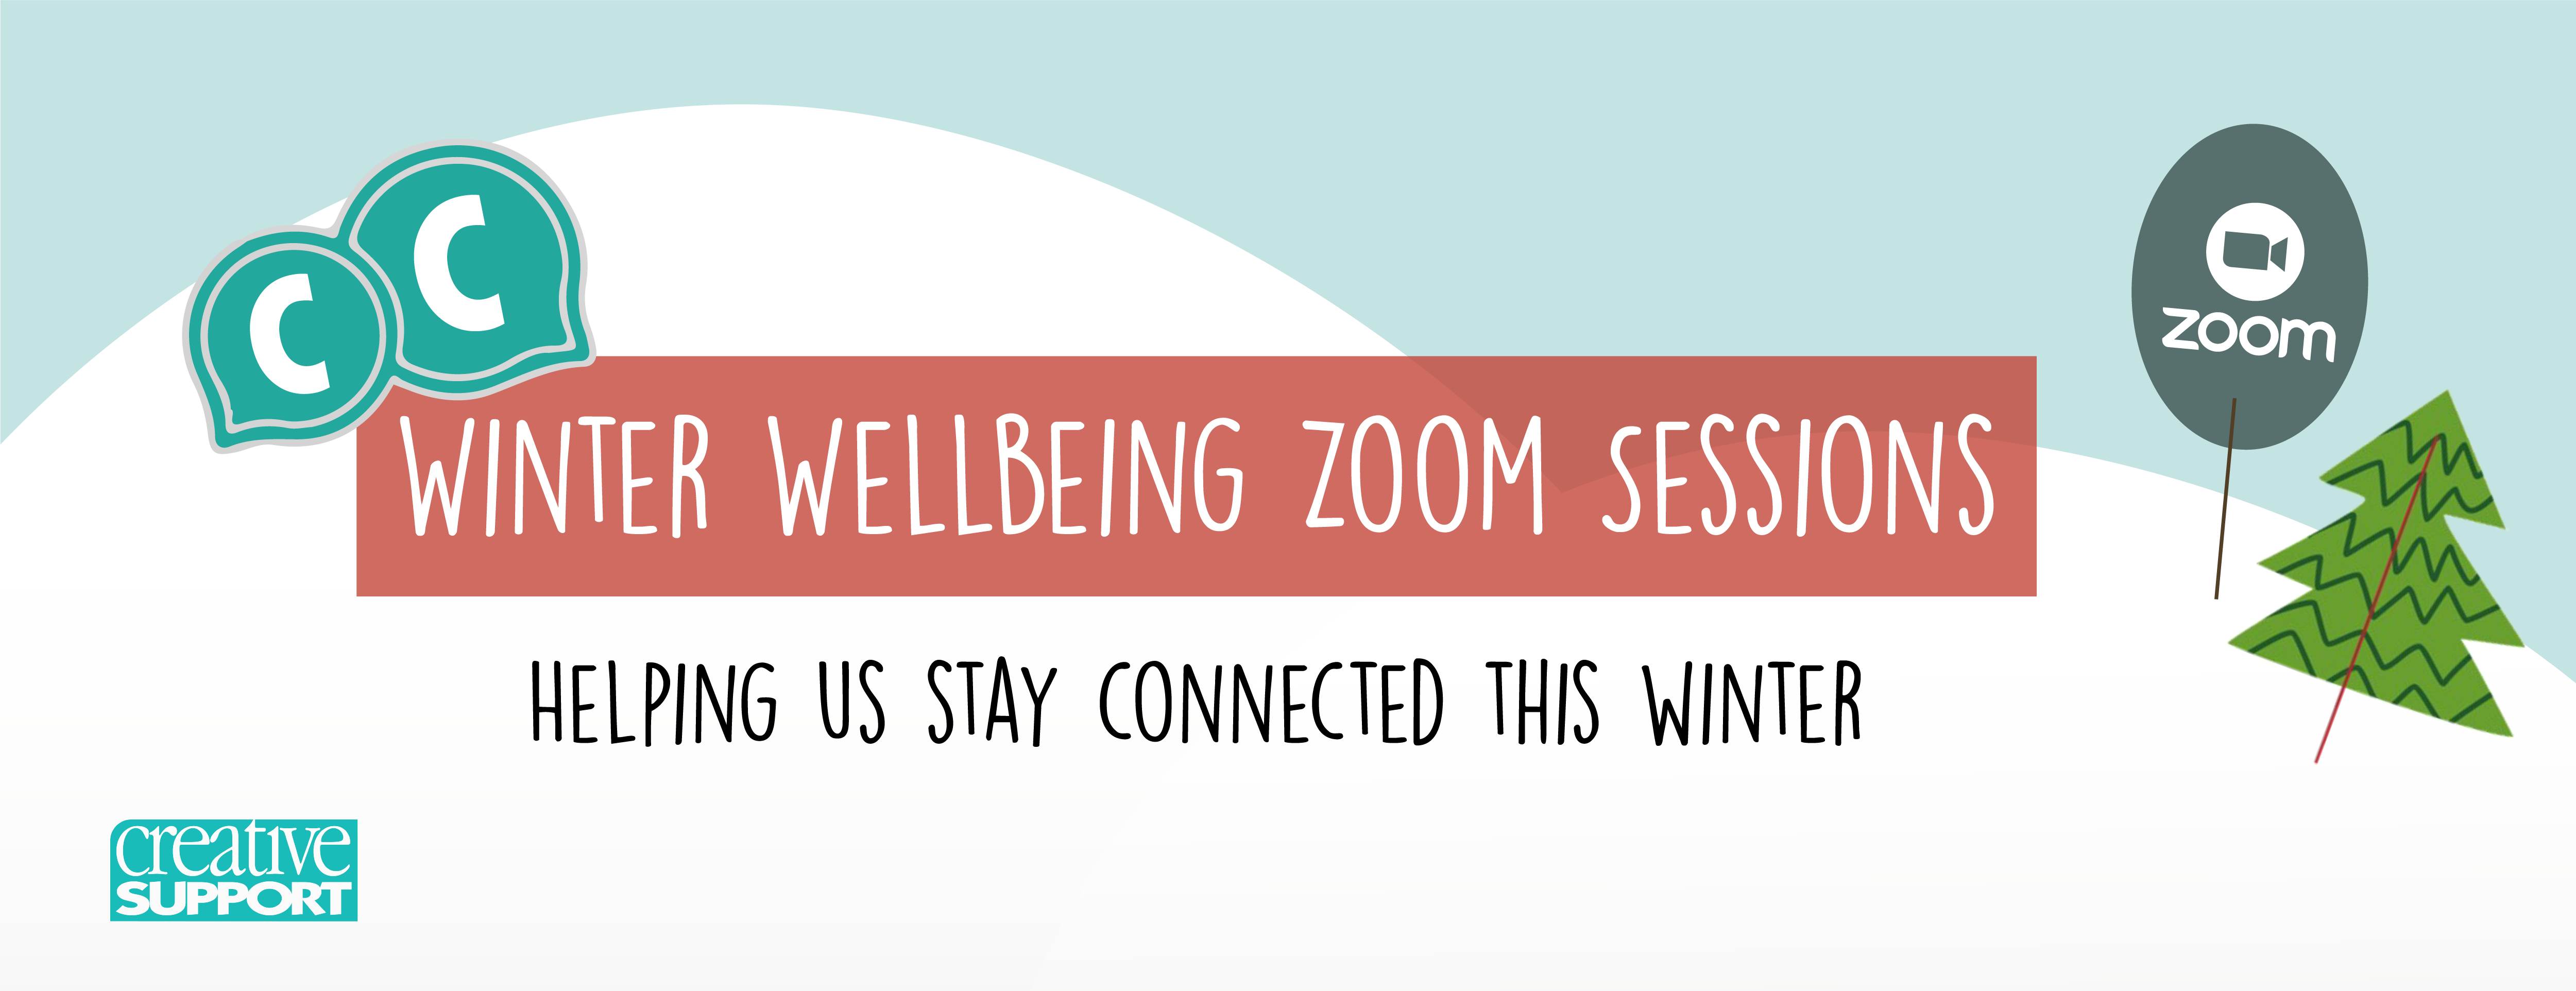 BOOK NOW for our Cook-Along Zoom Session – Wednesday 18th November